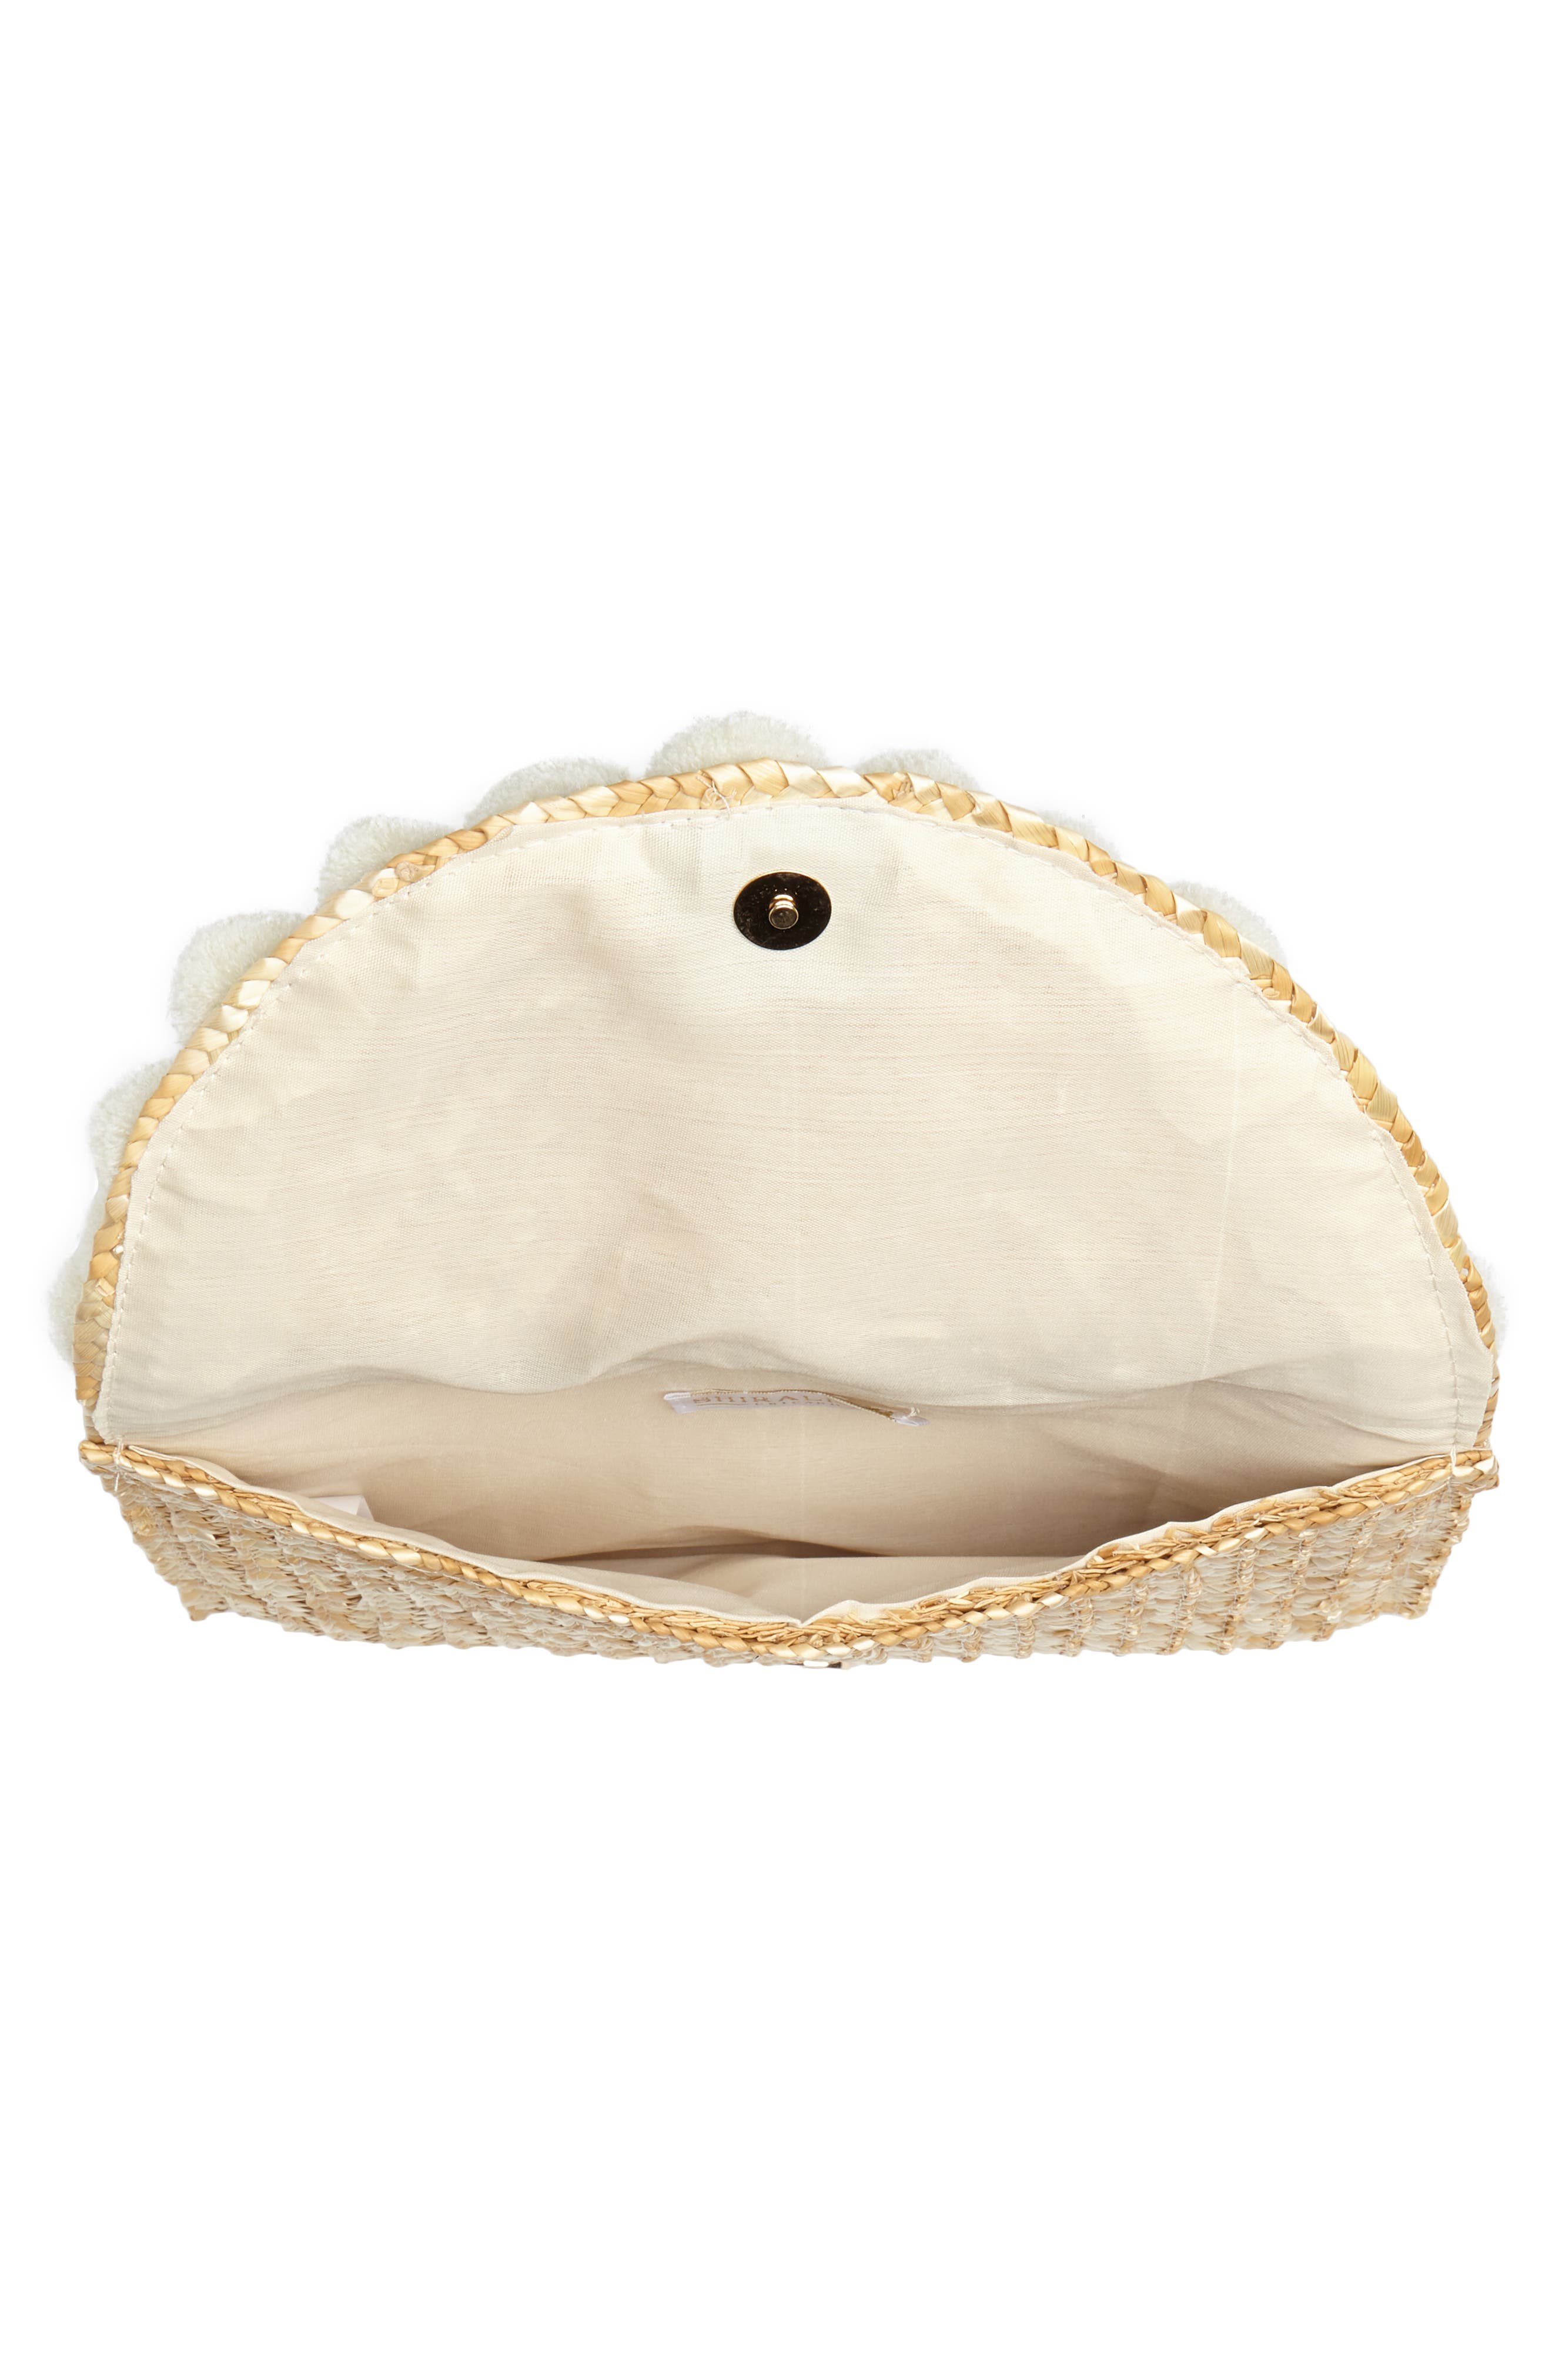 Fortuna Straw Clutch,                             Alternate thumbnail 4, color,                             Natural